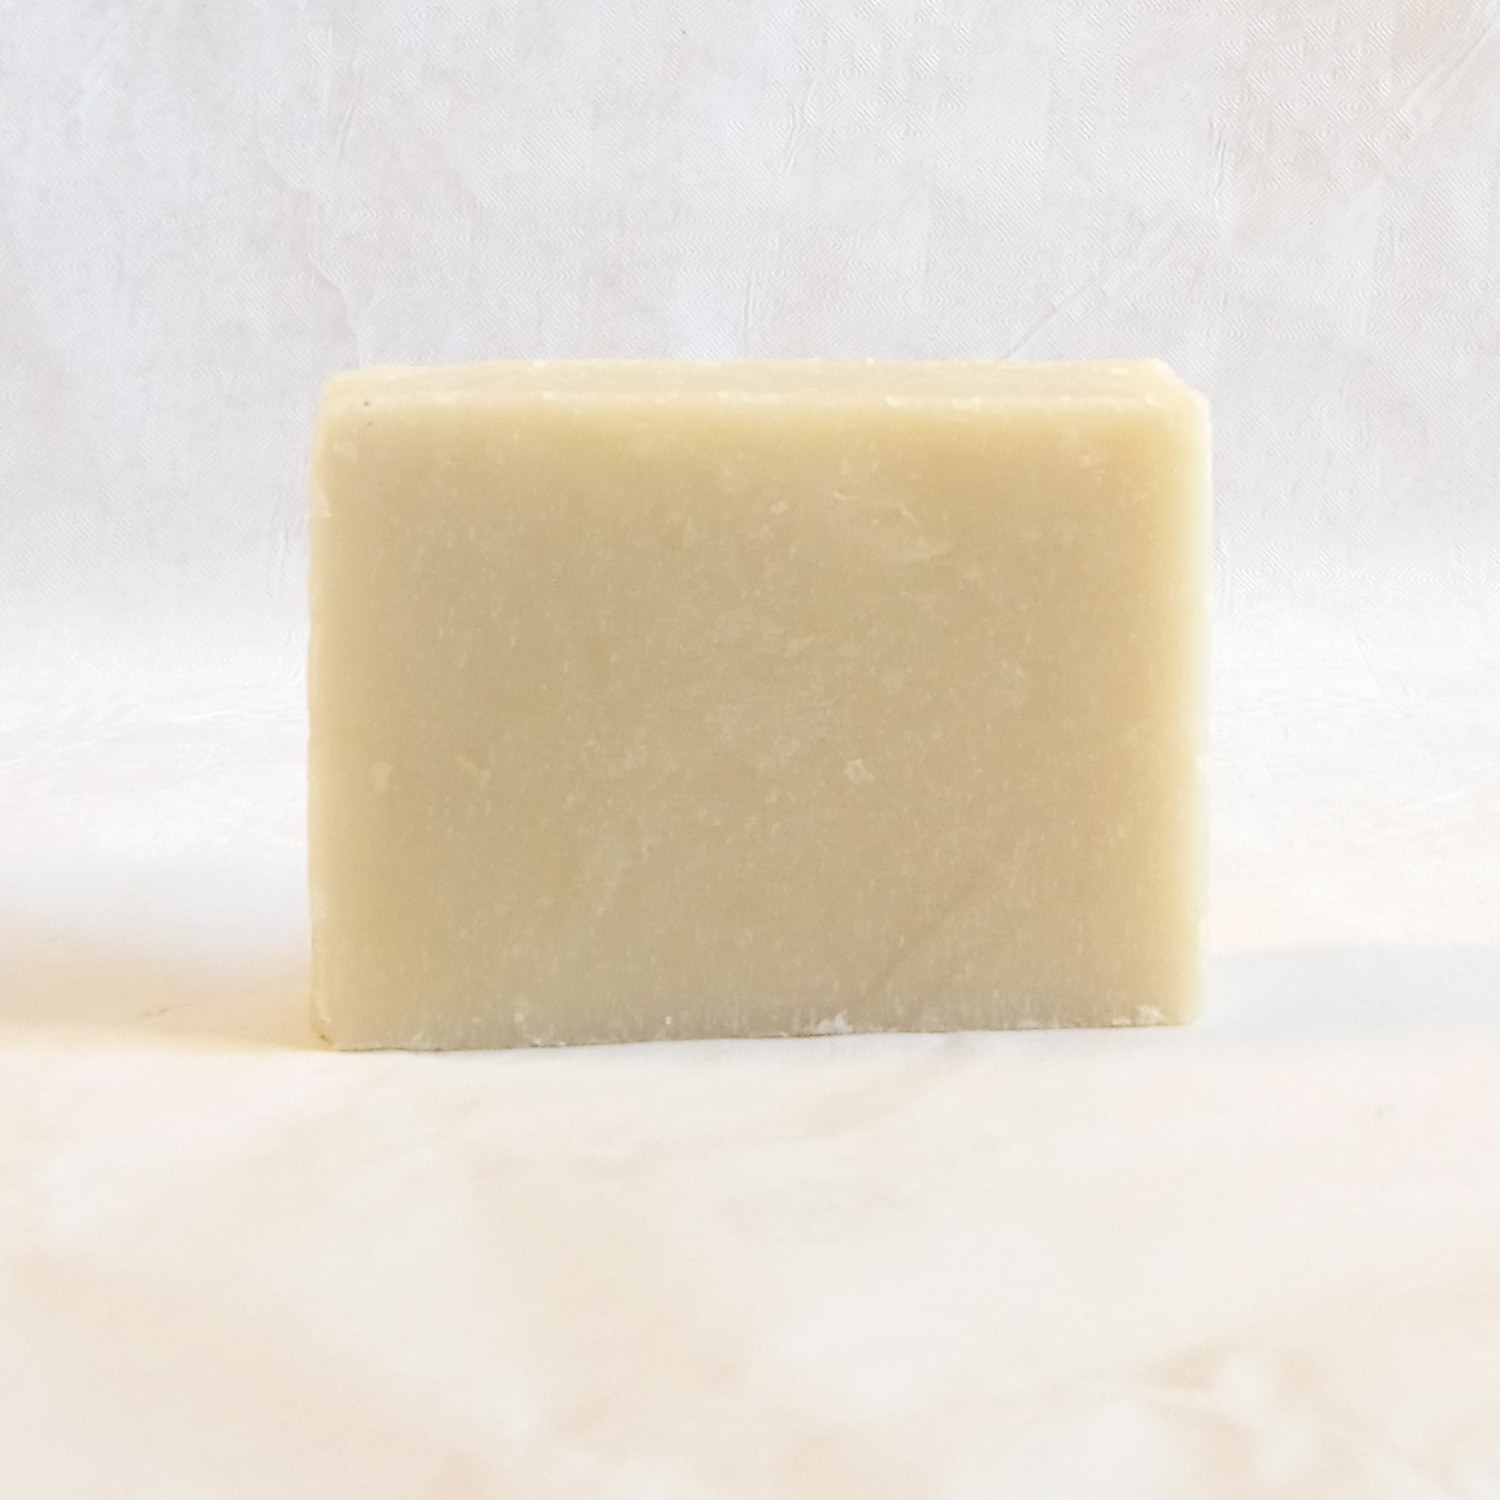 Alternative gentlemans soap for shaving male grooming best finest quality shave bar vegan friendly vegetable soap tallow free